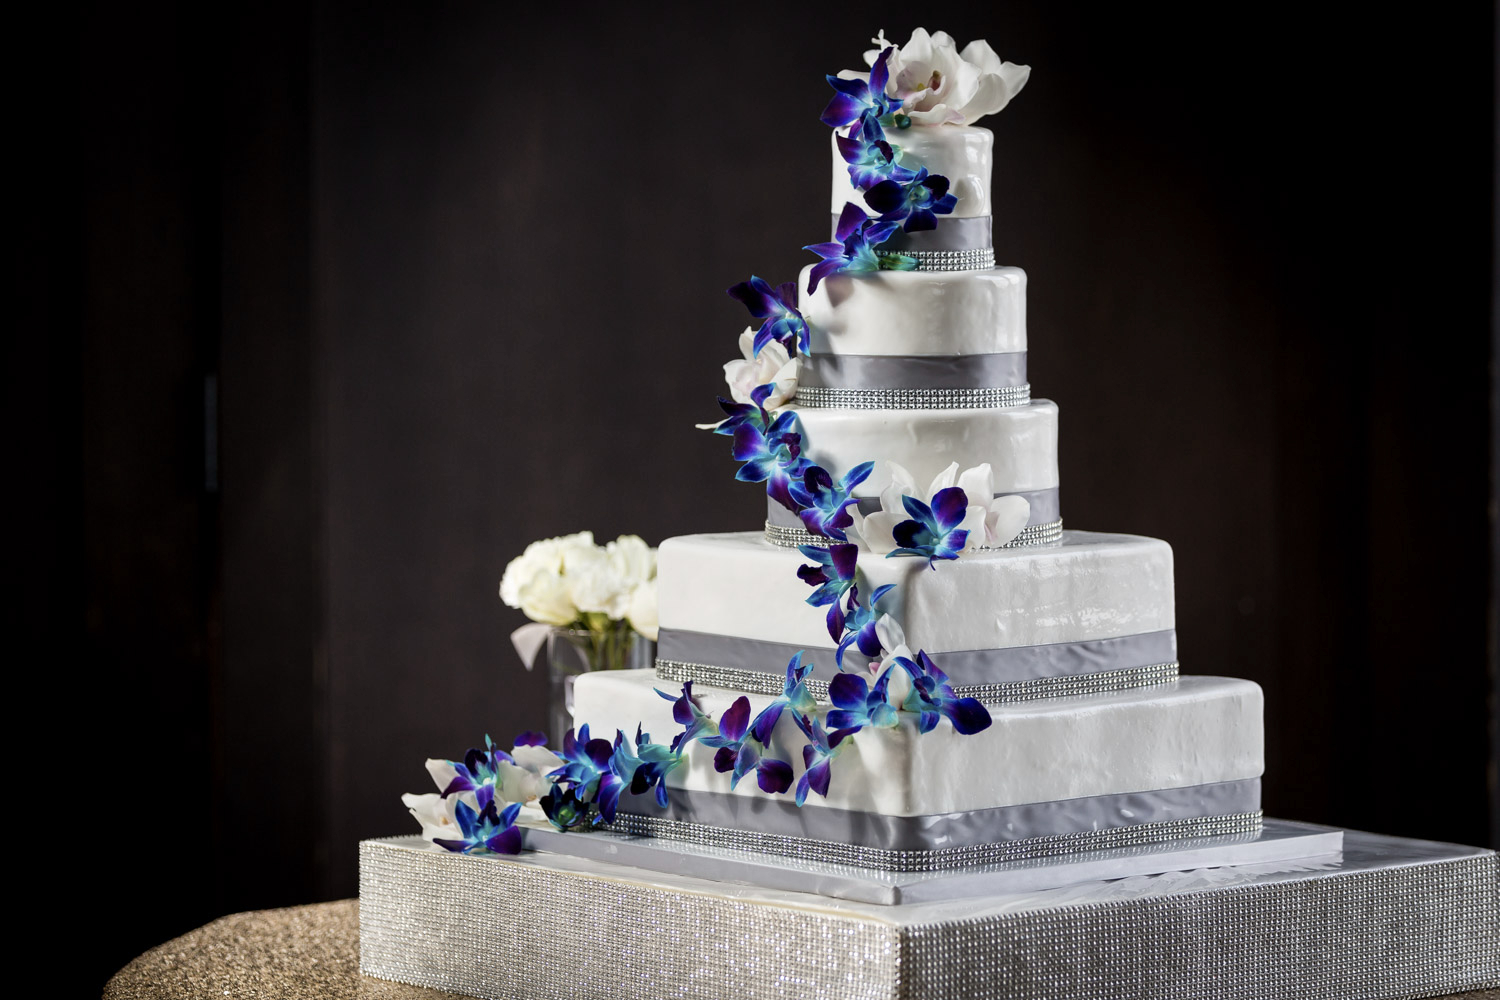 Wonderful Sweet Cheeks 5 Tier White Cake With Grey Ribbon And Blue And Purple  Orchids, Favorite